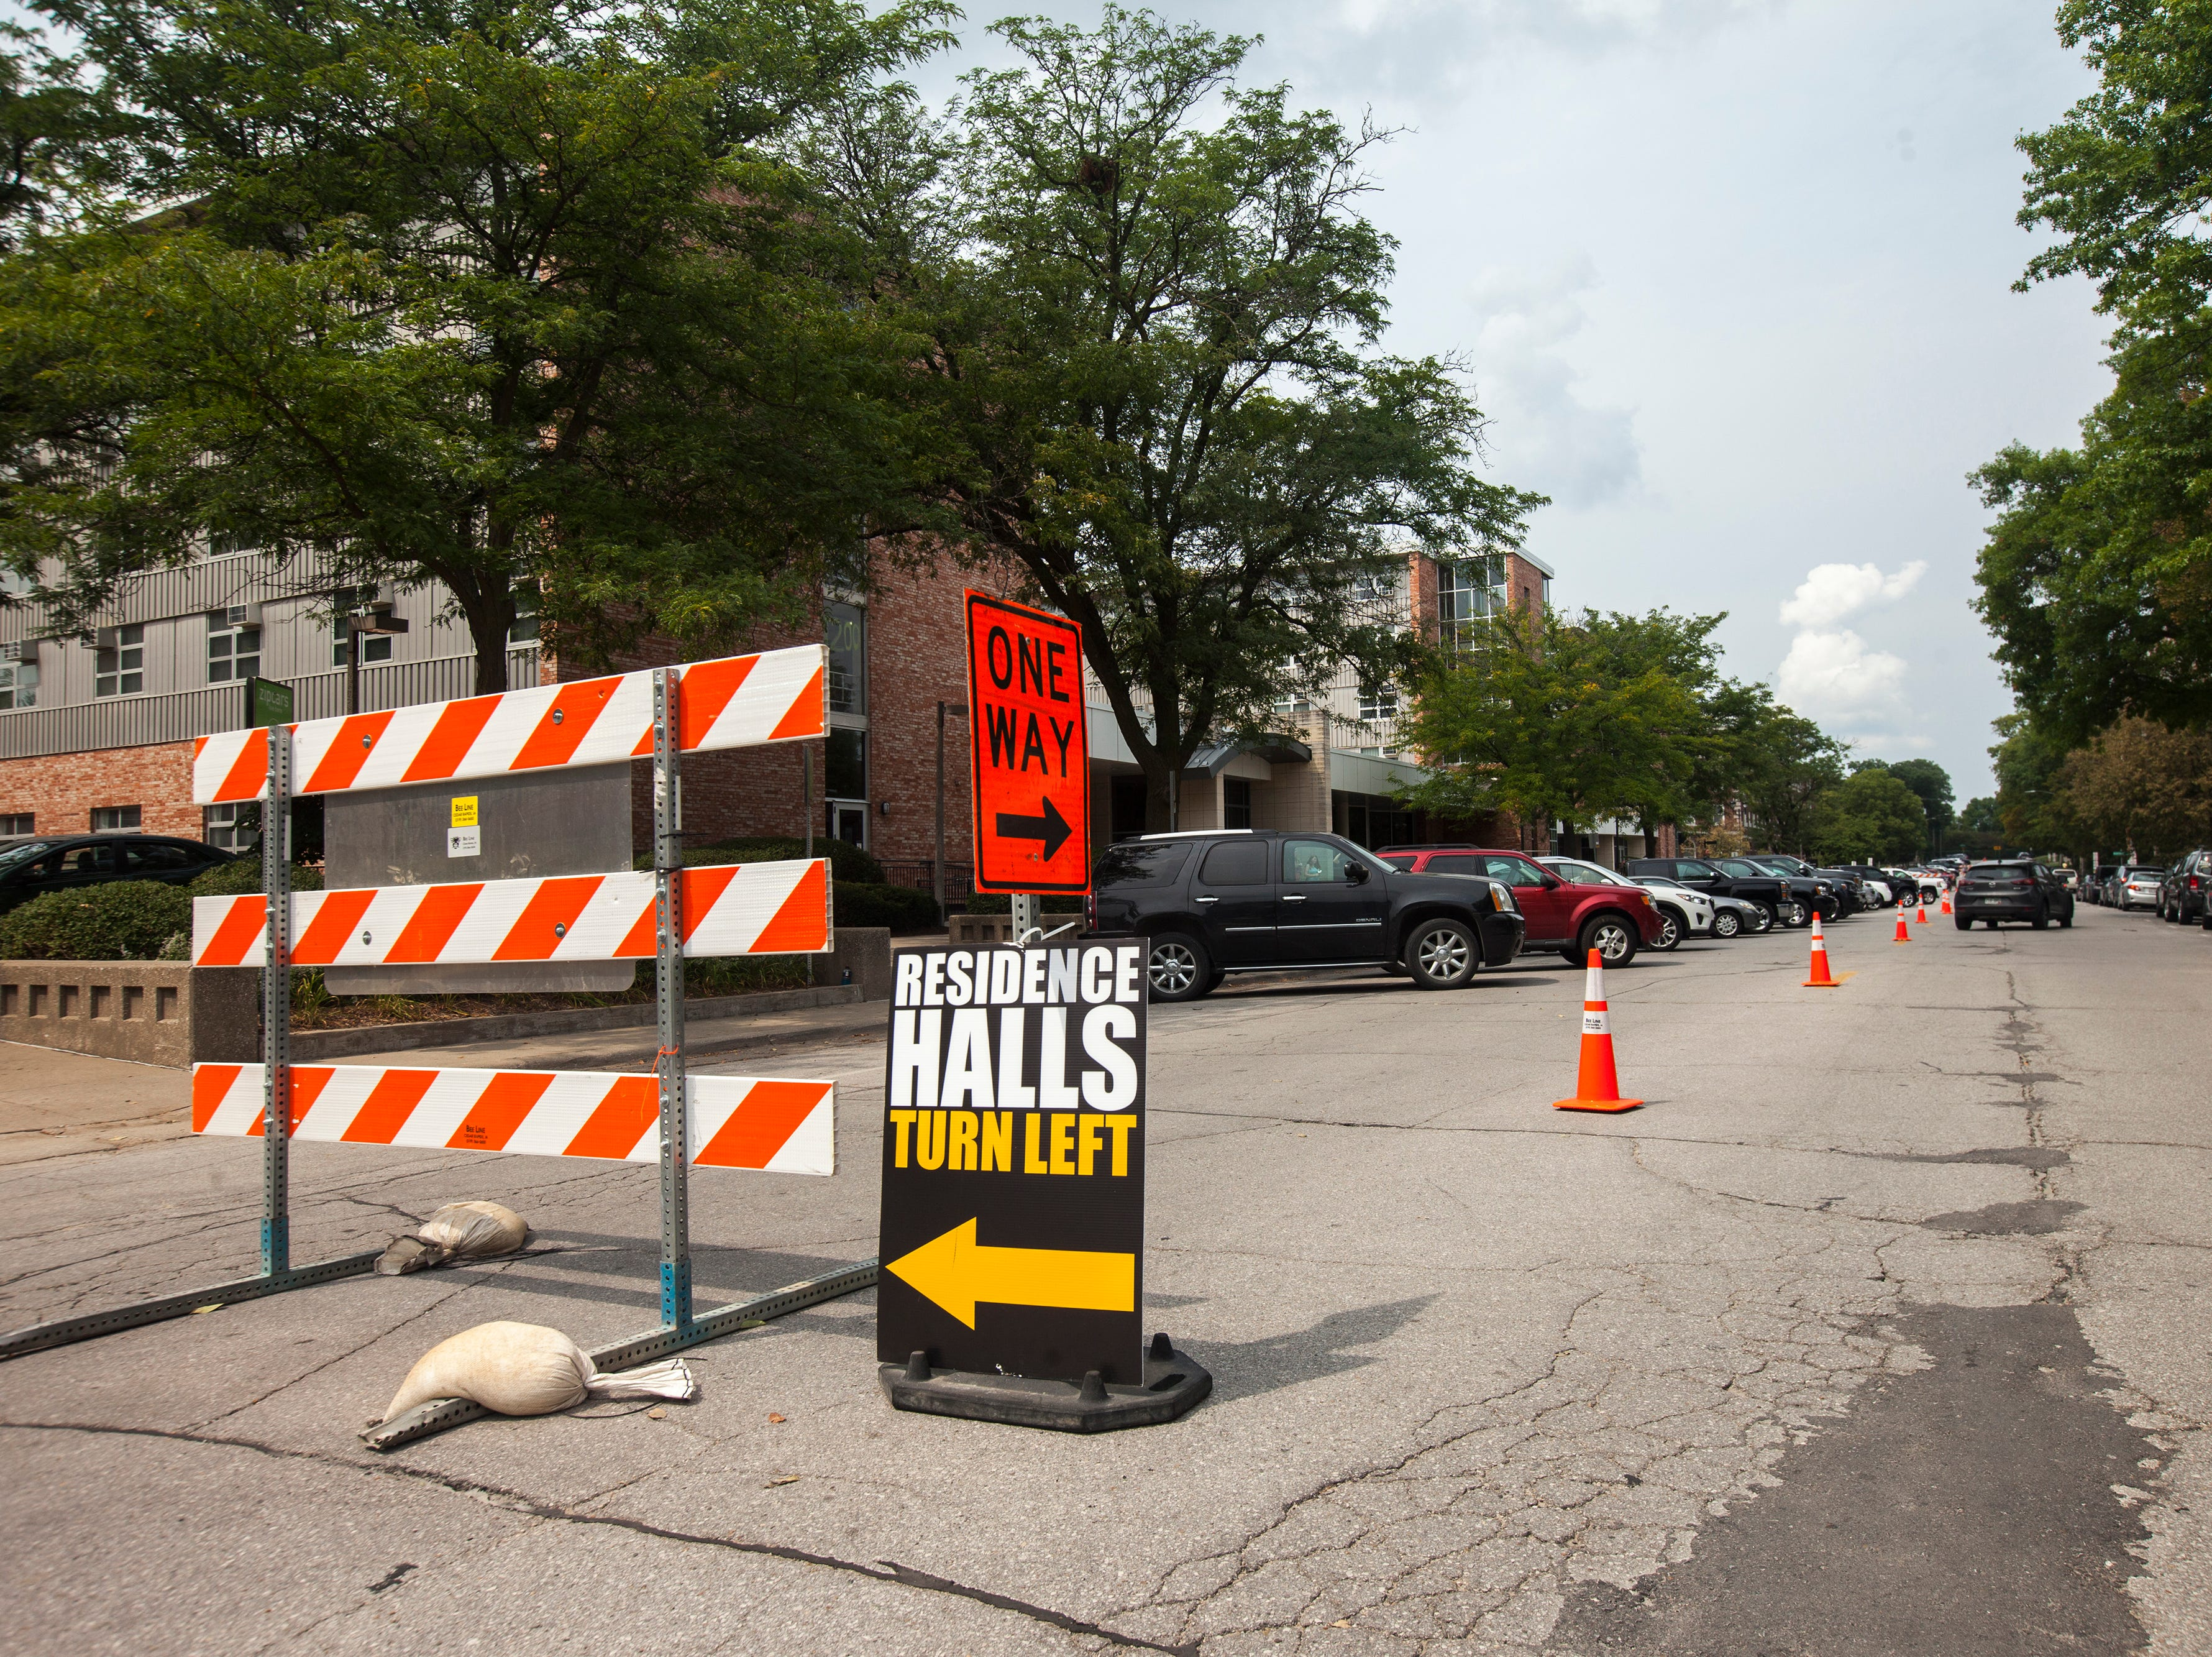 Traffic cones line Clinton Street during new student move-in on Tuesday, Aug. 14, 2018, on the University of Iowa campus in Iowa City. Tuesday was the first day for new students on campus to move into their residence halls.